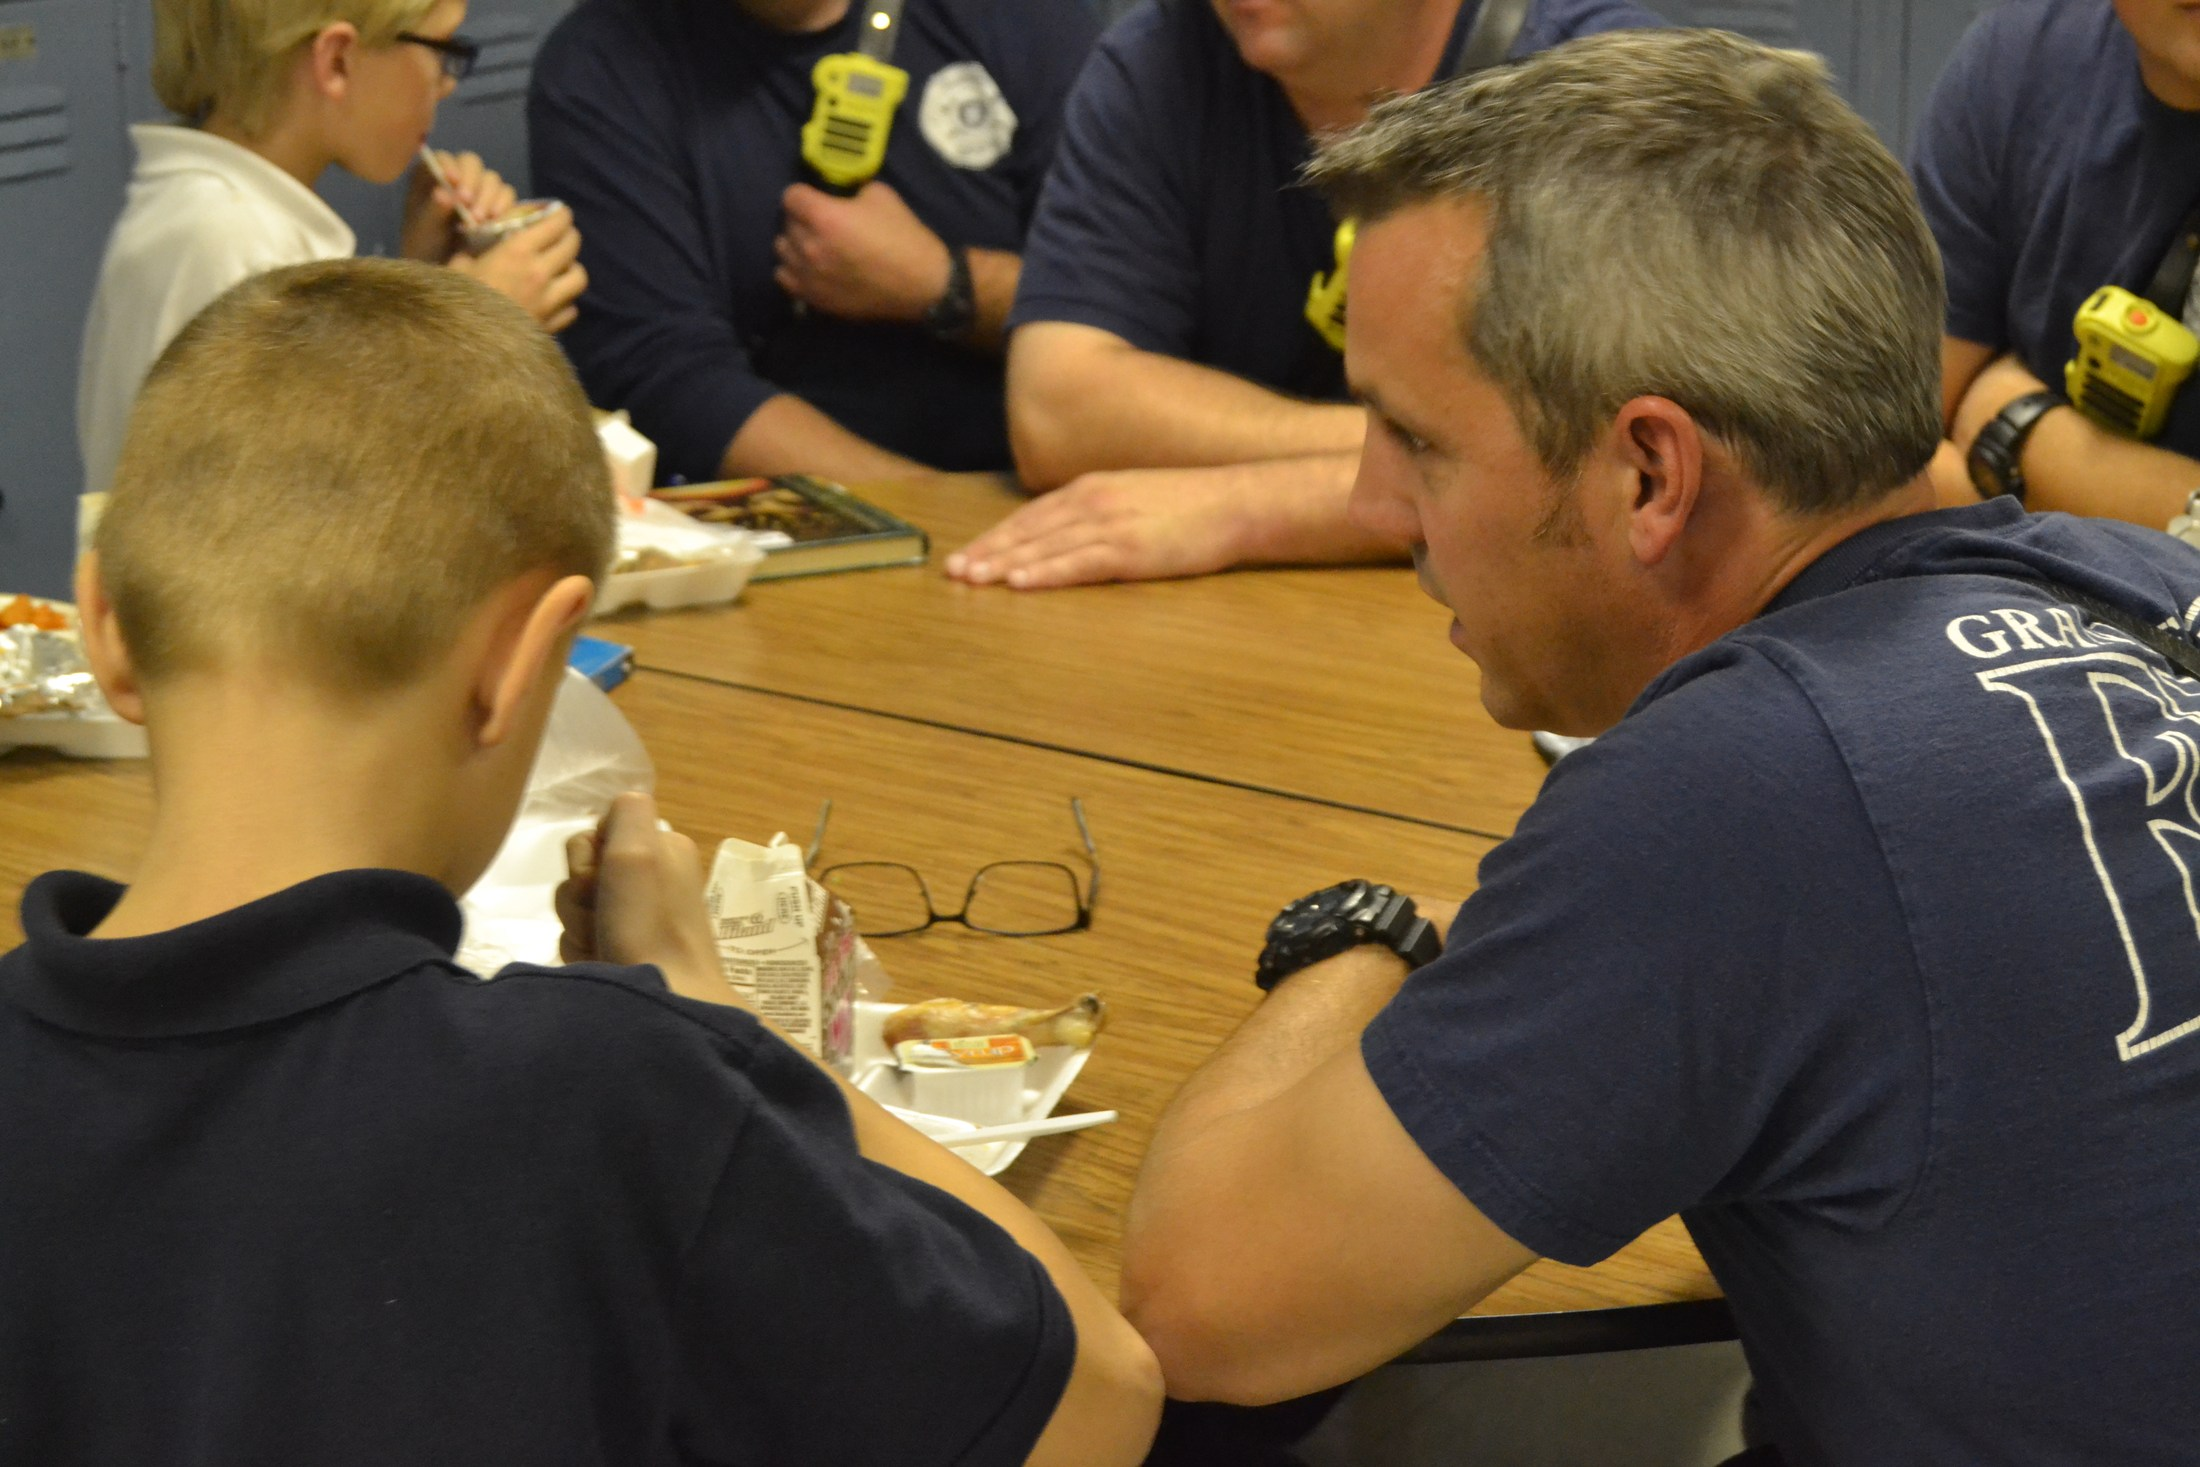 Firefighter mentoring students.